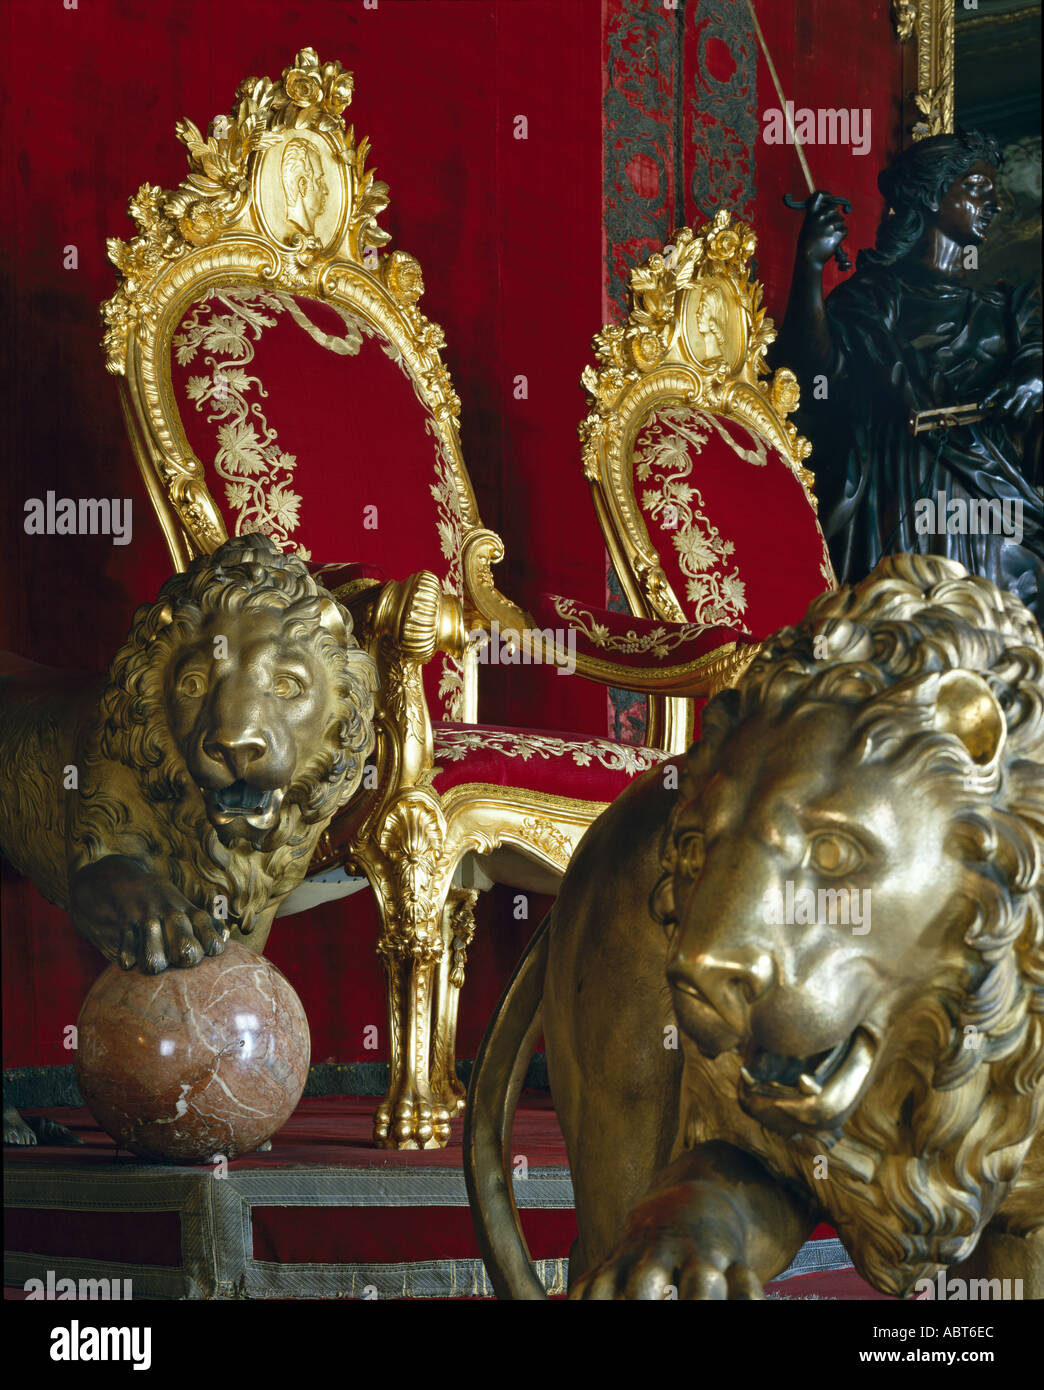 Royal Palace, Madrid. Louis XV style thrones between golden lions in the throne room. - Stock Image